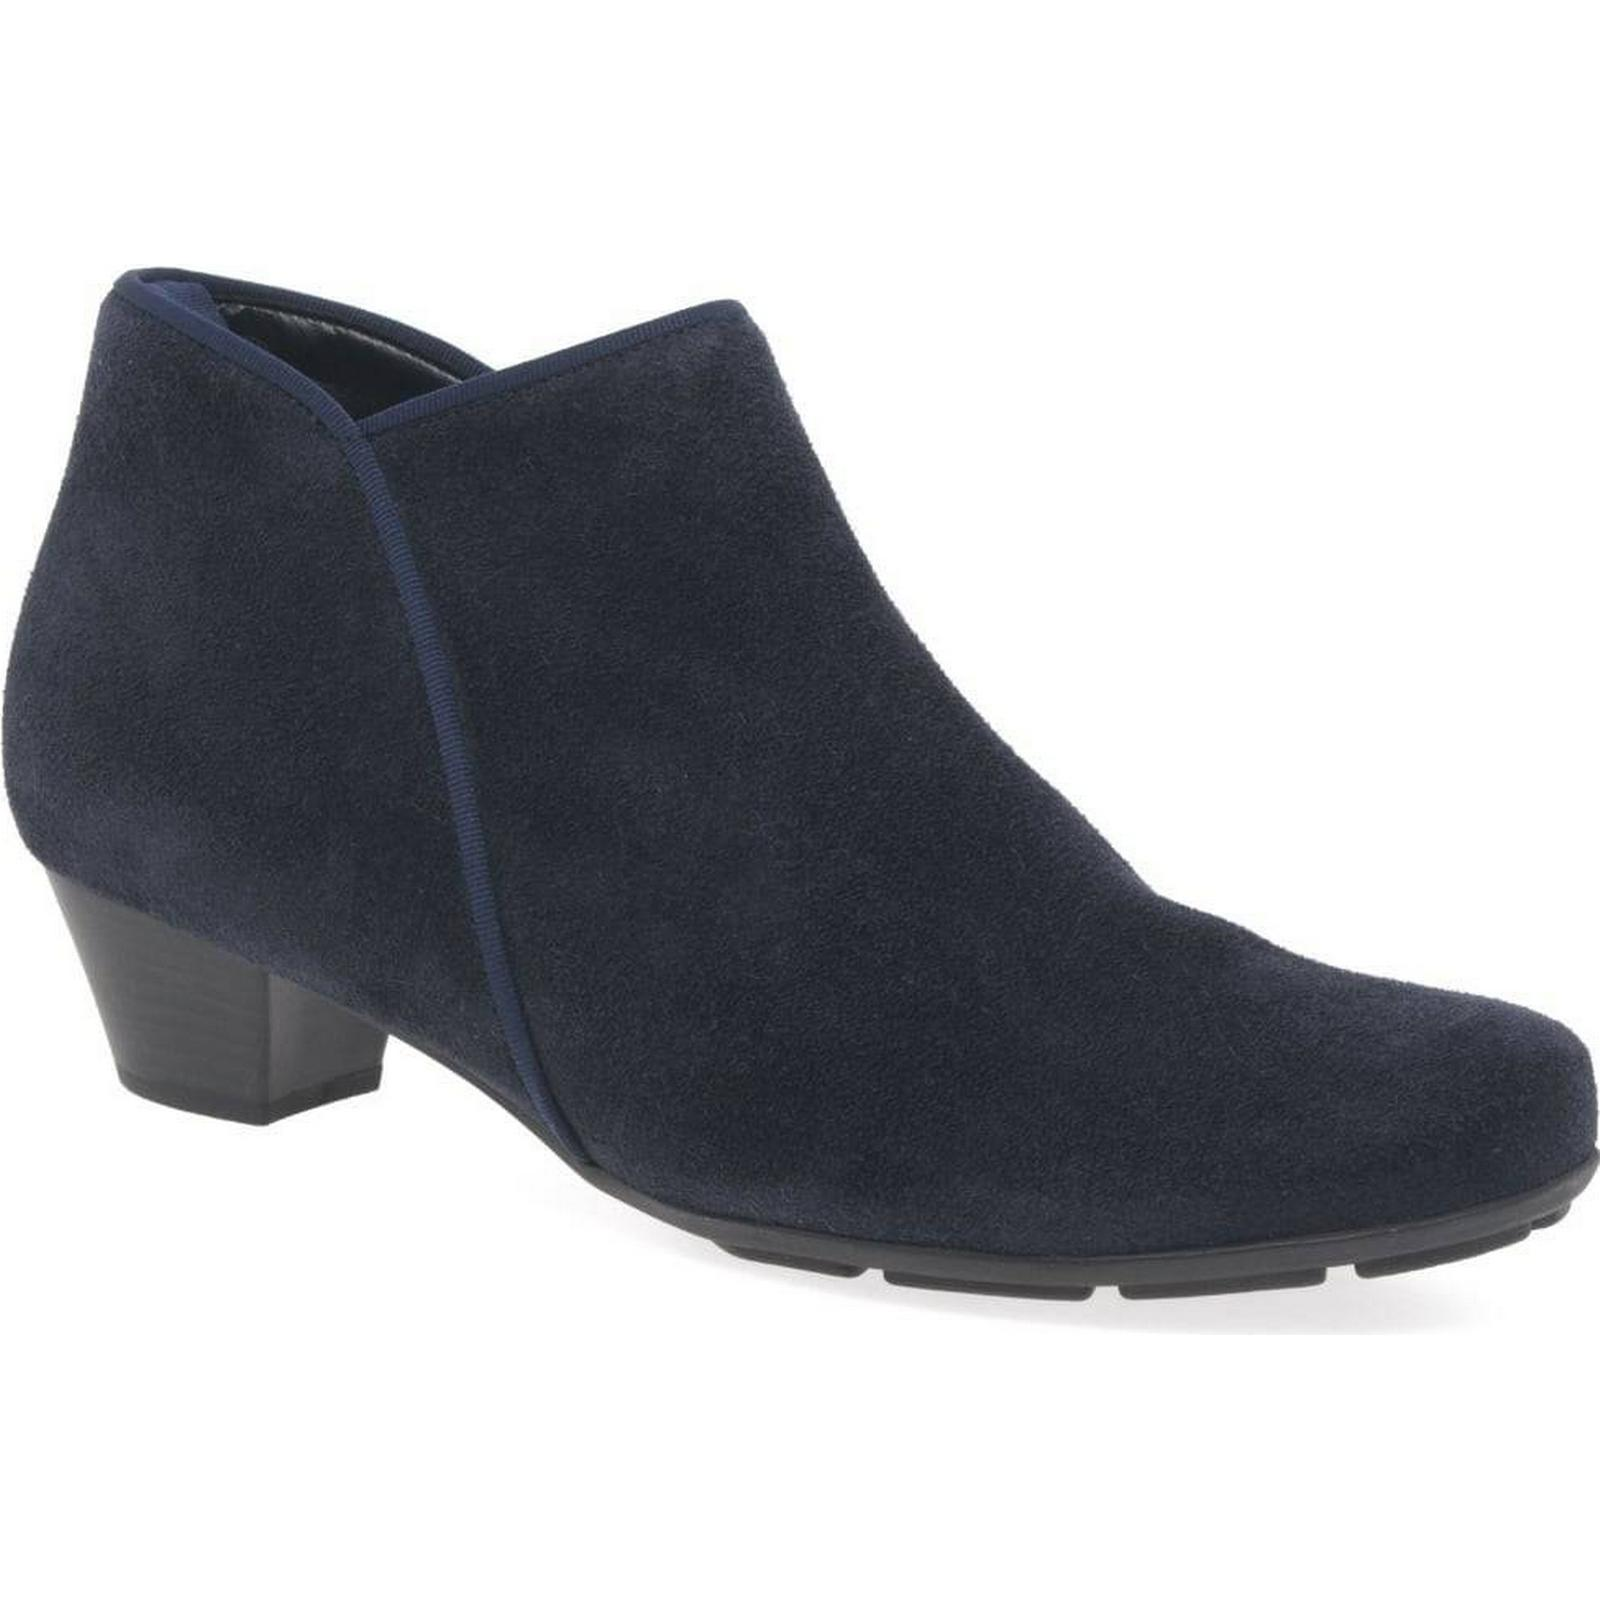 Gabor Trudy Navy Womens Ankle Boots Colour: Navy Trudy Suede, Size: 4 1bfb43